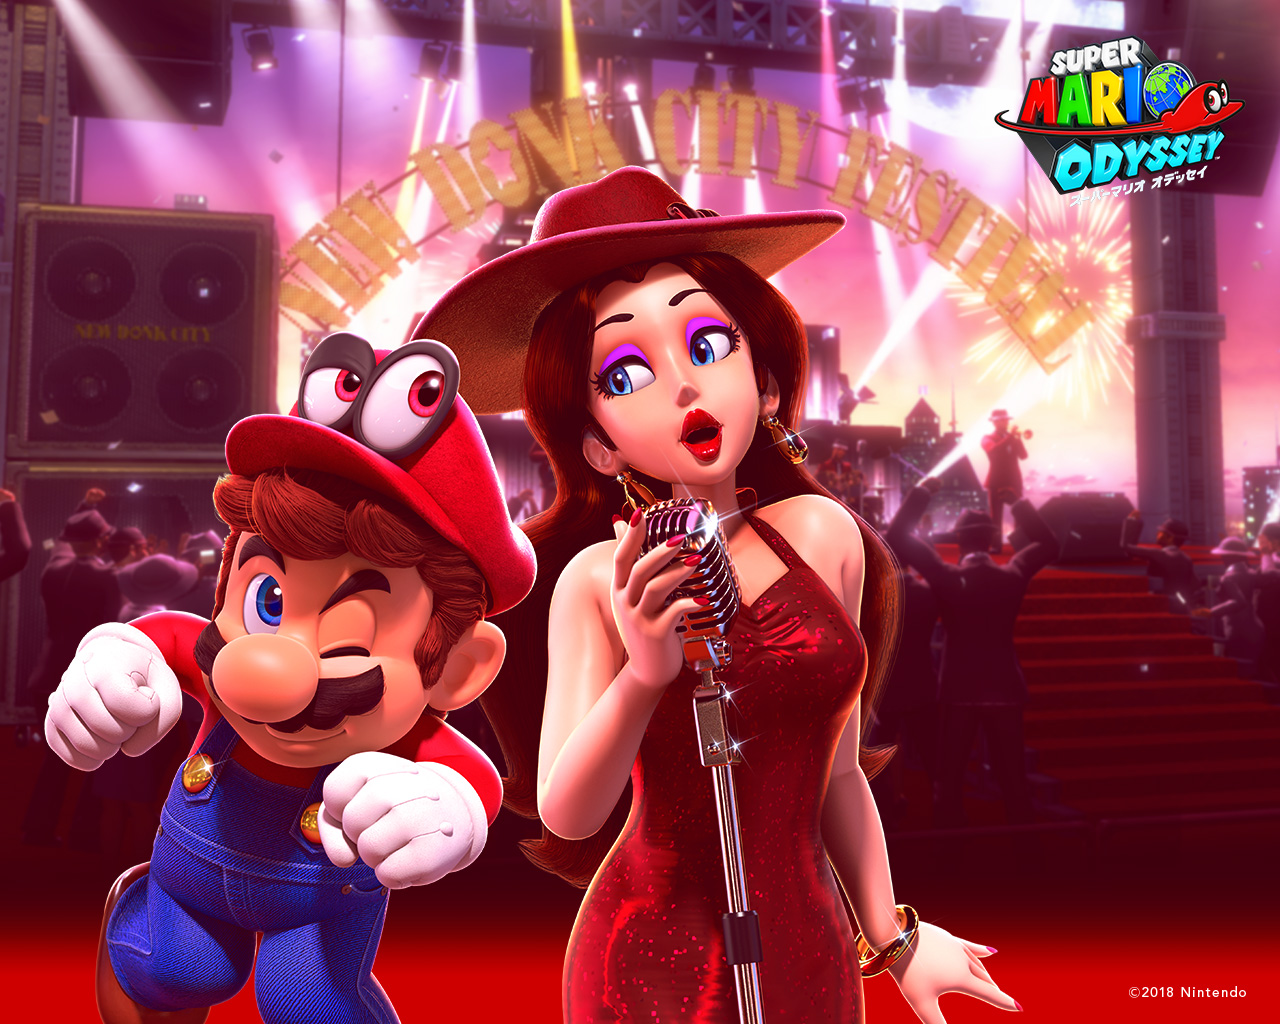 Download The Super Mario Odyssey Happy Birthday Wallpaper For Free